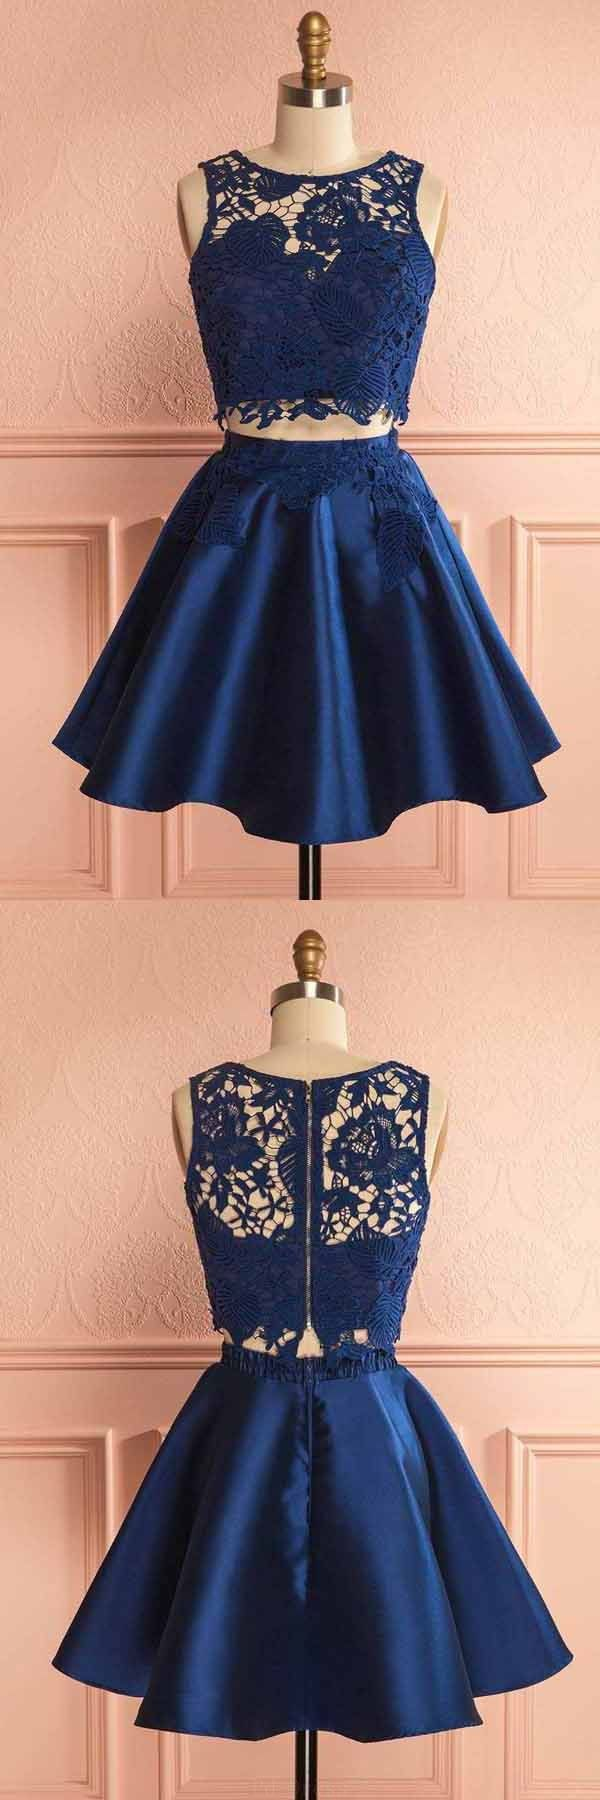 Outlet easy prom dresses short two piece dark blue satin homecoming